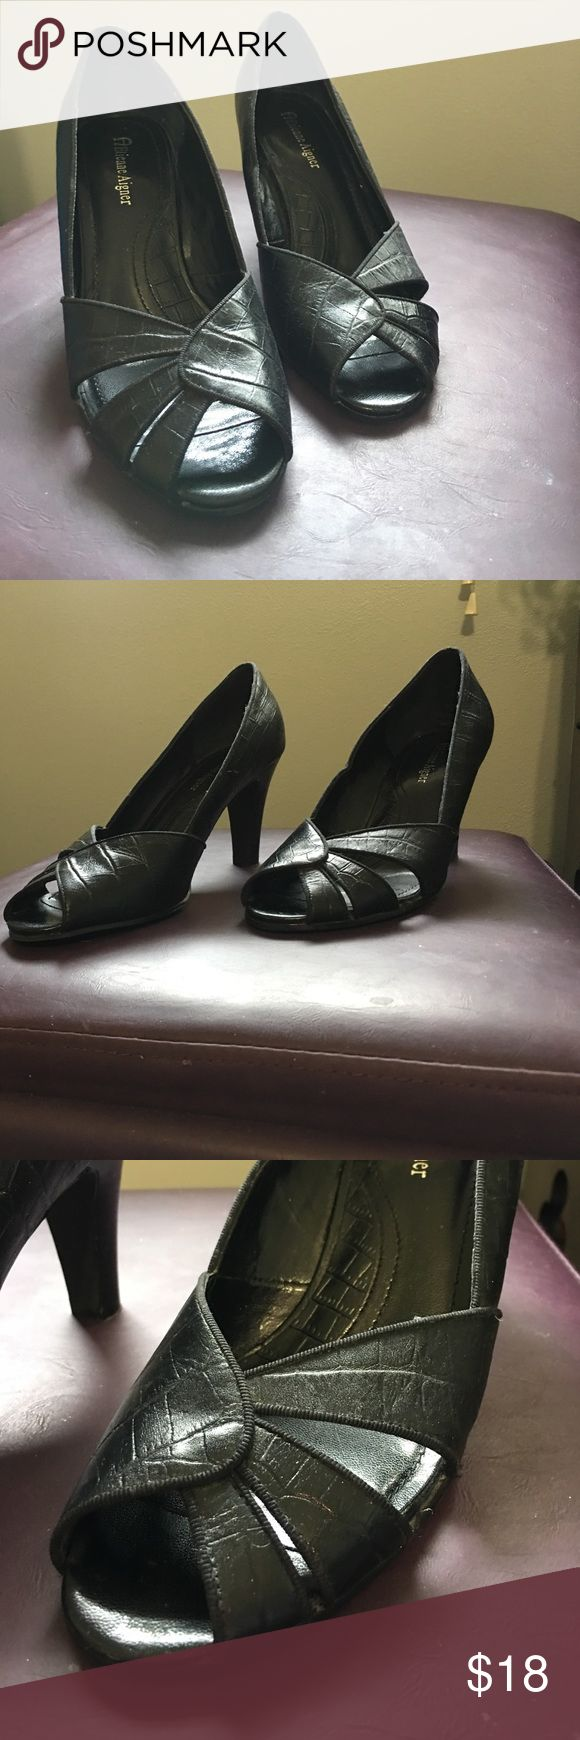 Super cute Retro style Peep Toe Pumps Perfect shoes for any occasion with any outfit! Never worn. Etienne Aigner Shoes Heels